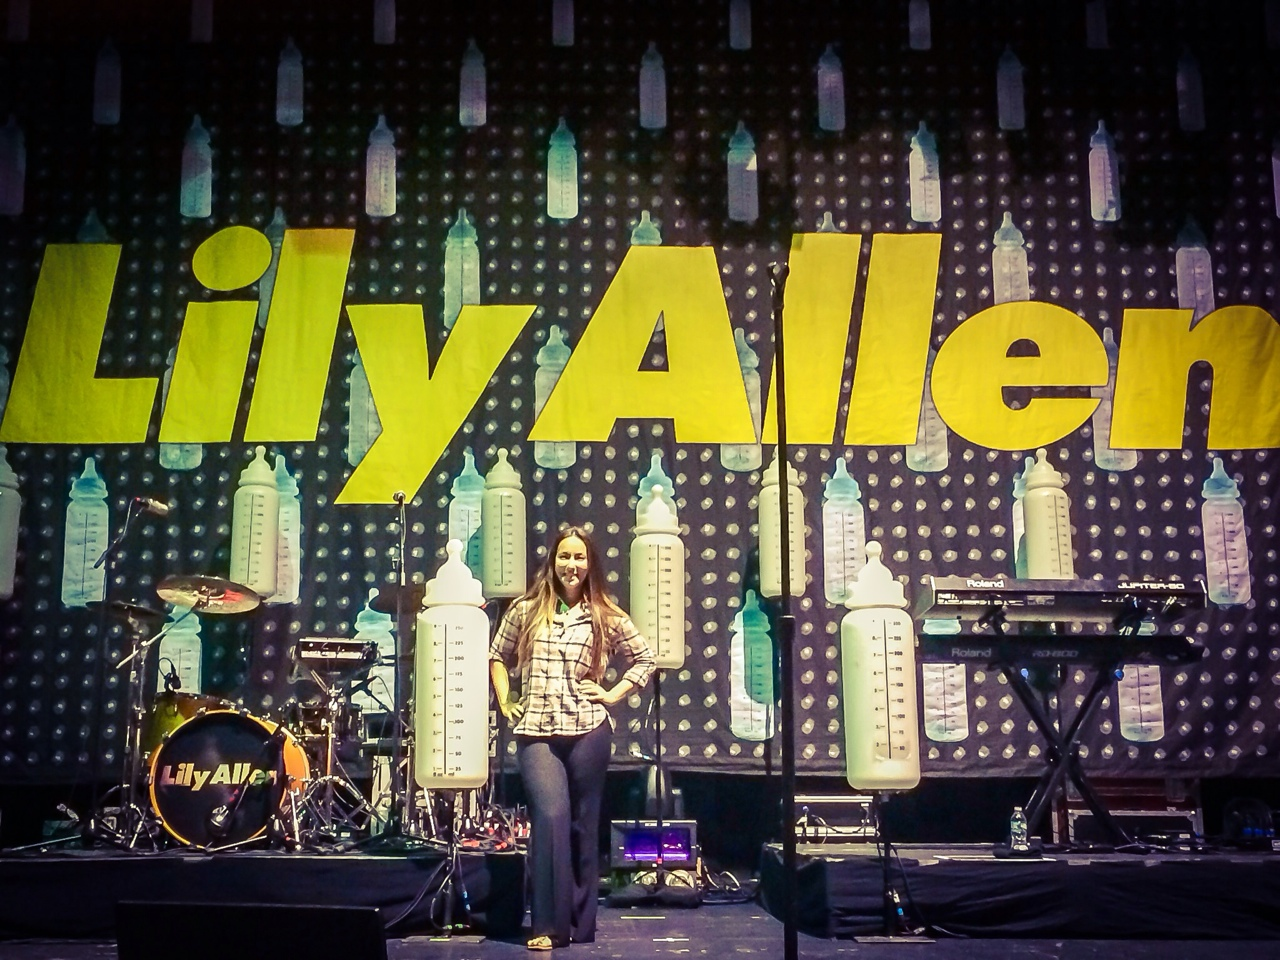 Couldn't resist a photo on this stage during a site walk-thru at Terminal 5 a few weeks ago! #lilyallen